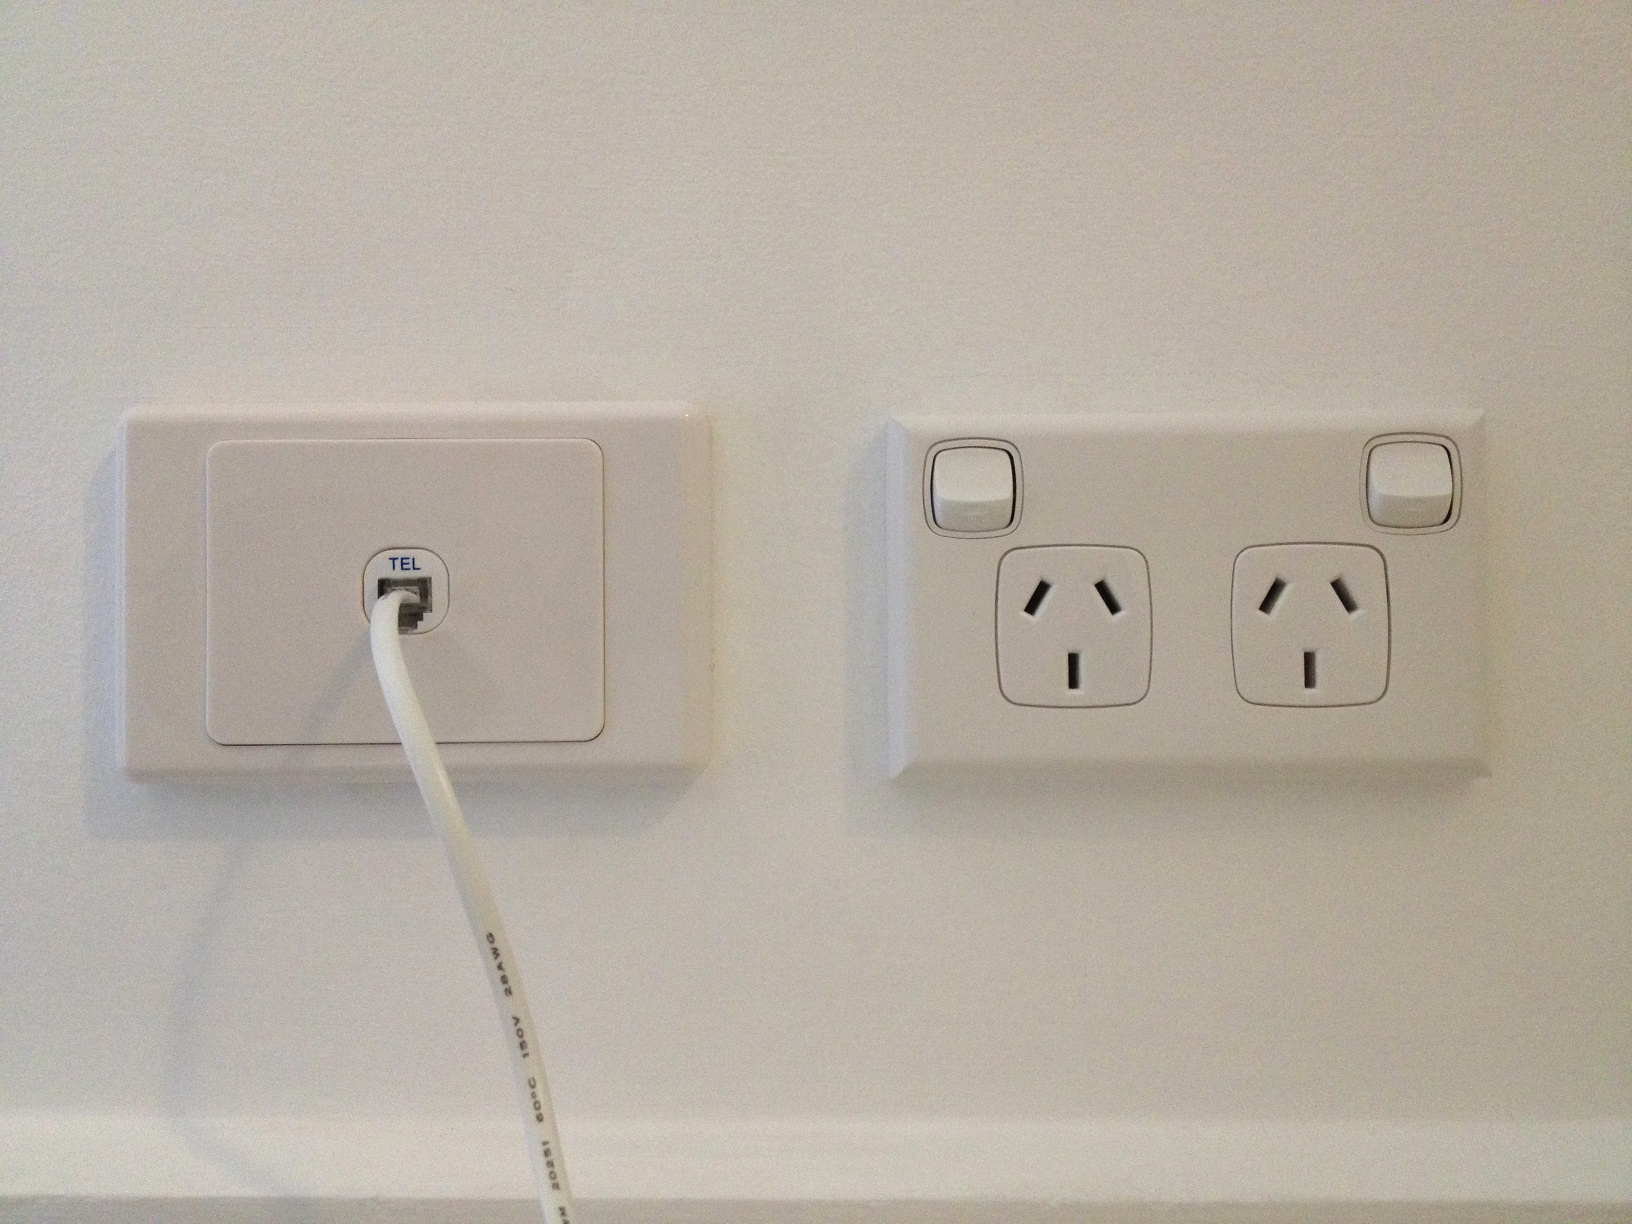 phone socket upgraded1?w=640&h=480 upgrading a 600 series phone socket to rj11 tp69 telstra wall plate wiring diagram at mifinder.co